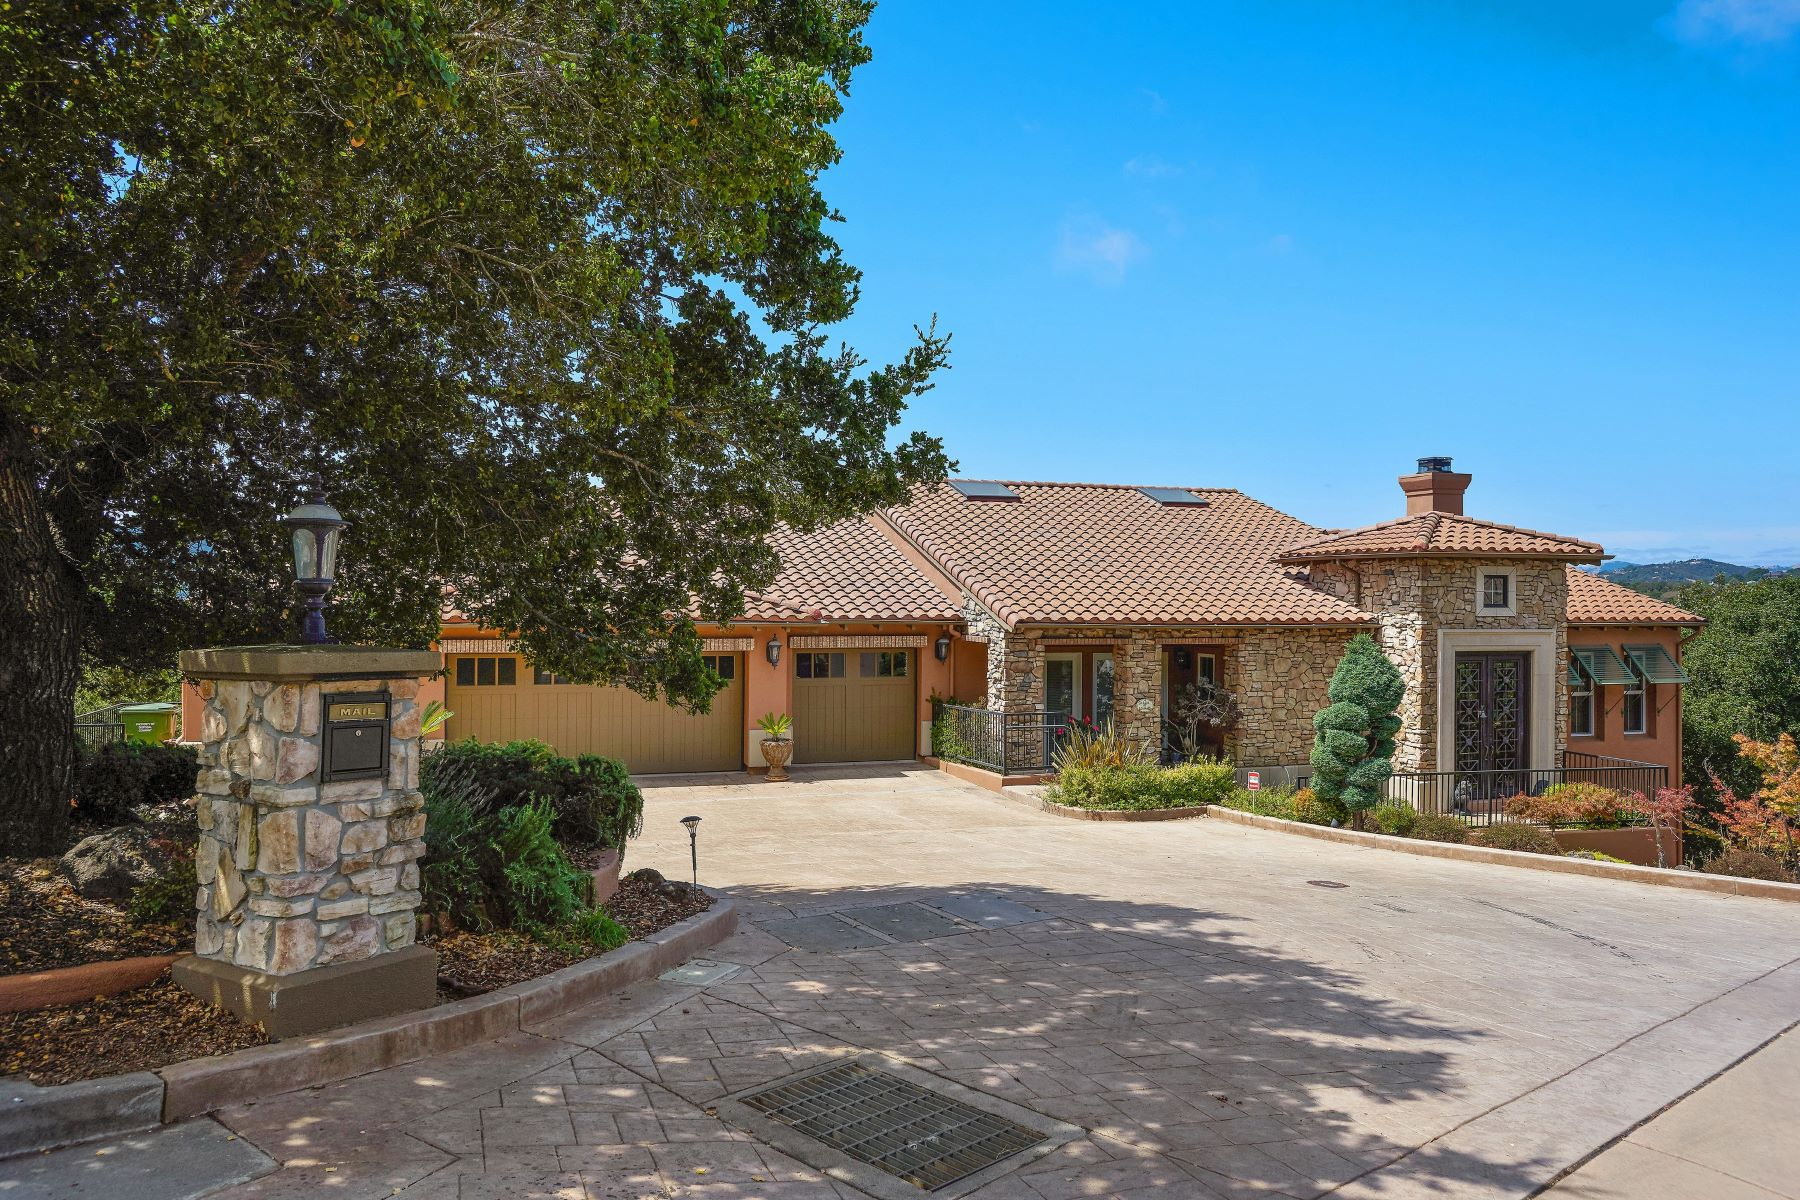 Single Family Homes for Sale at Fabulous Location in Stonetree 75 Stonetree Lane Novato, California 94945 United States